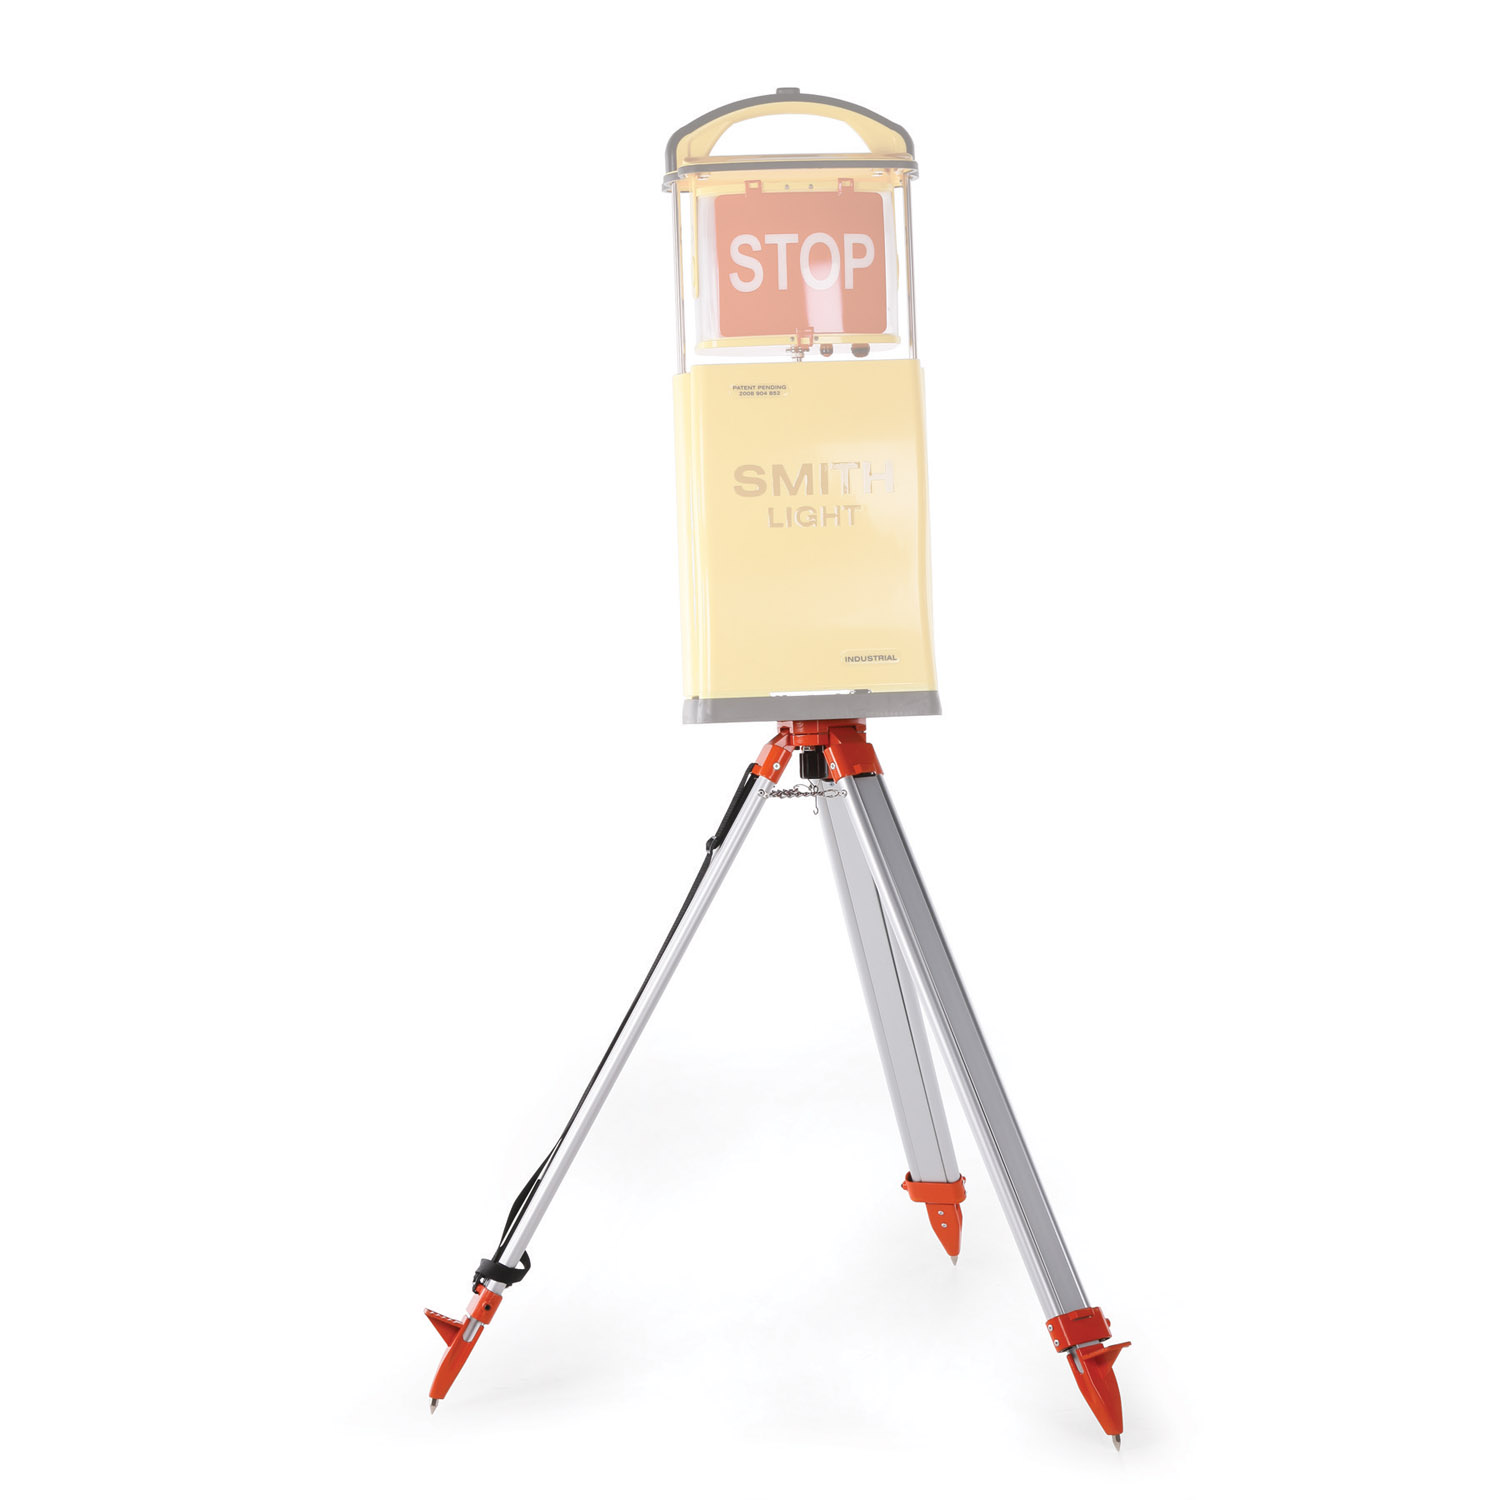 Smith Light Tripod with Mounting Bracket